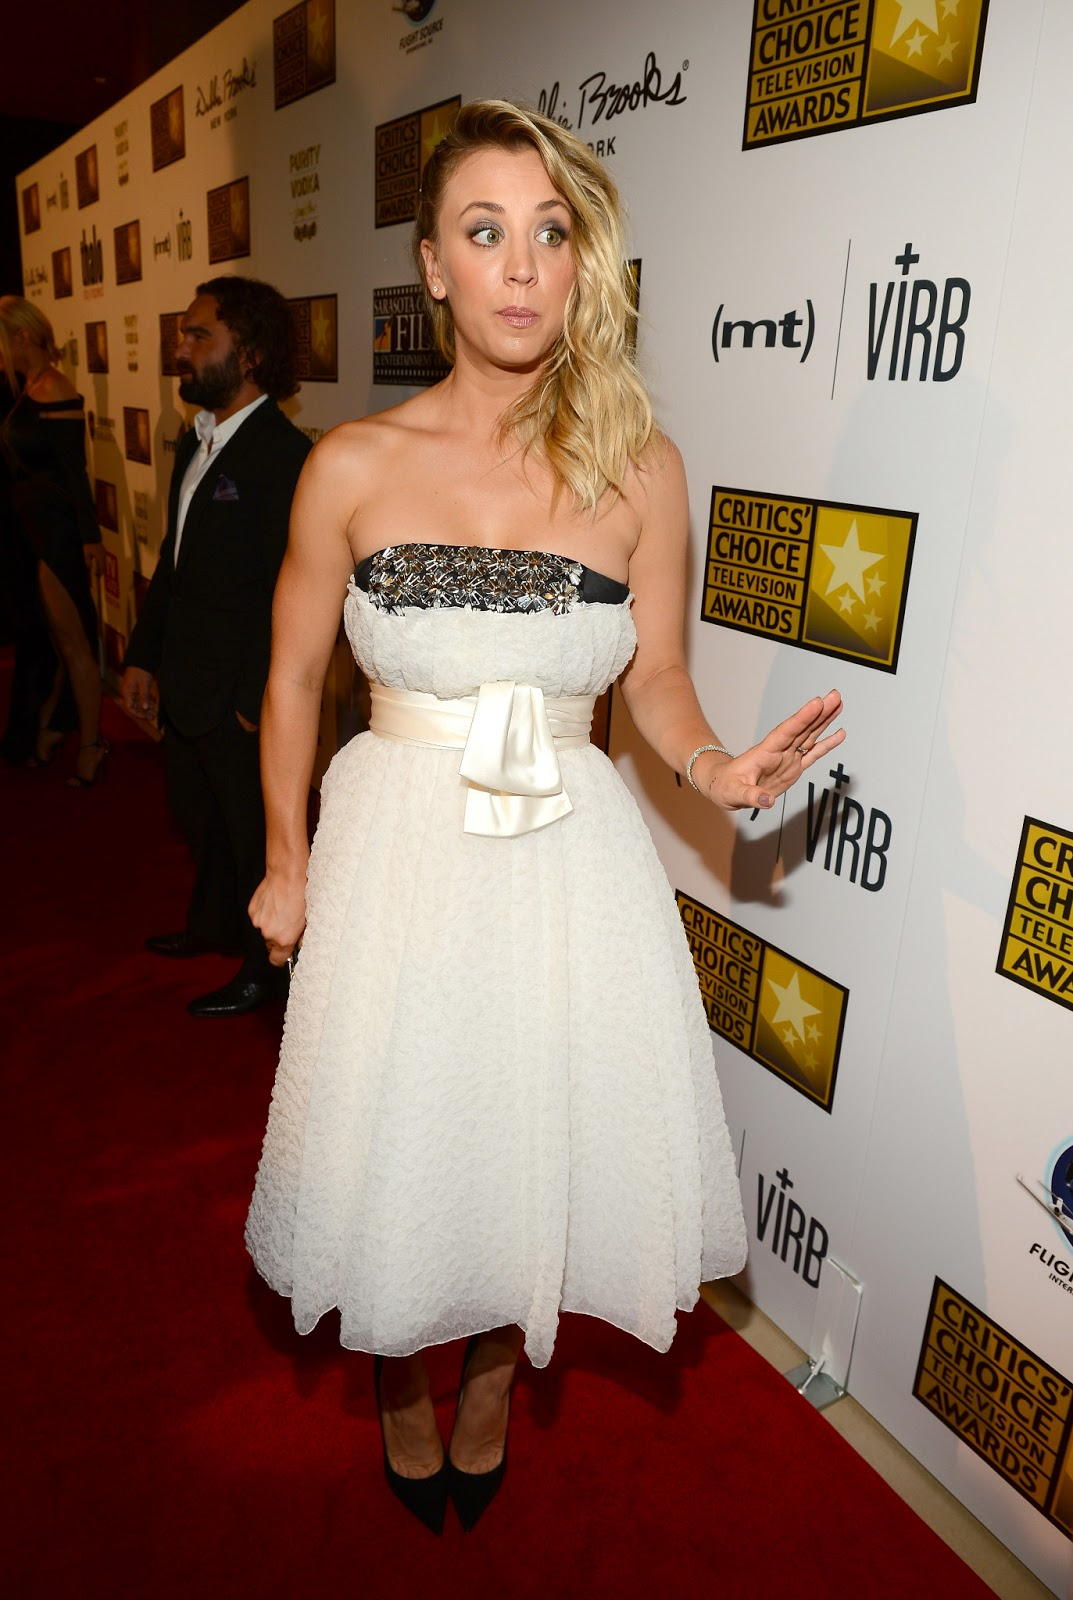 http://1.bp.blogspot.com/-5vShj2pHDek/UbccLVPJ19I/AAAAAAAAgpo/mY_6WZeORls/s1600/Kaley+Cuoco+-+3rd+Annual+Critics%27+Choice+Television+Awards+red+carpet+-+June+10,+2013+-03.jpg